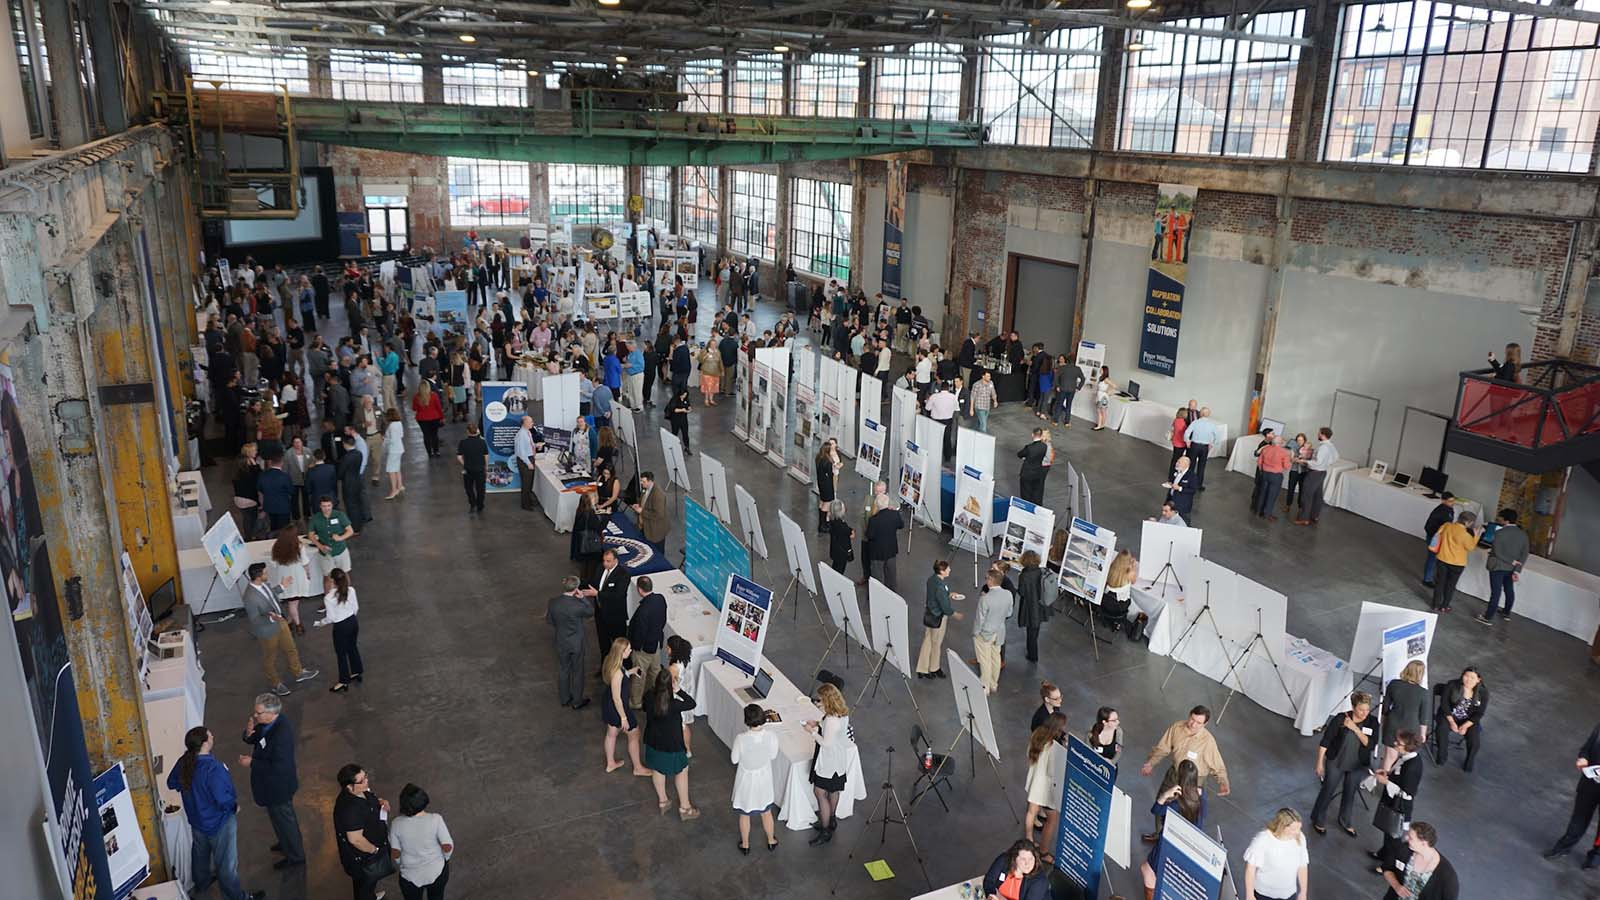 A trade show event in the Main Hall at the WaterFire Arts Center. Photograph by Laura Duclos.